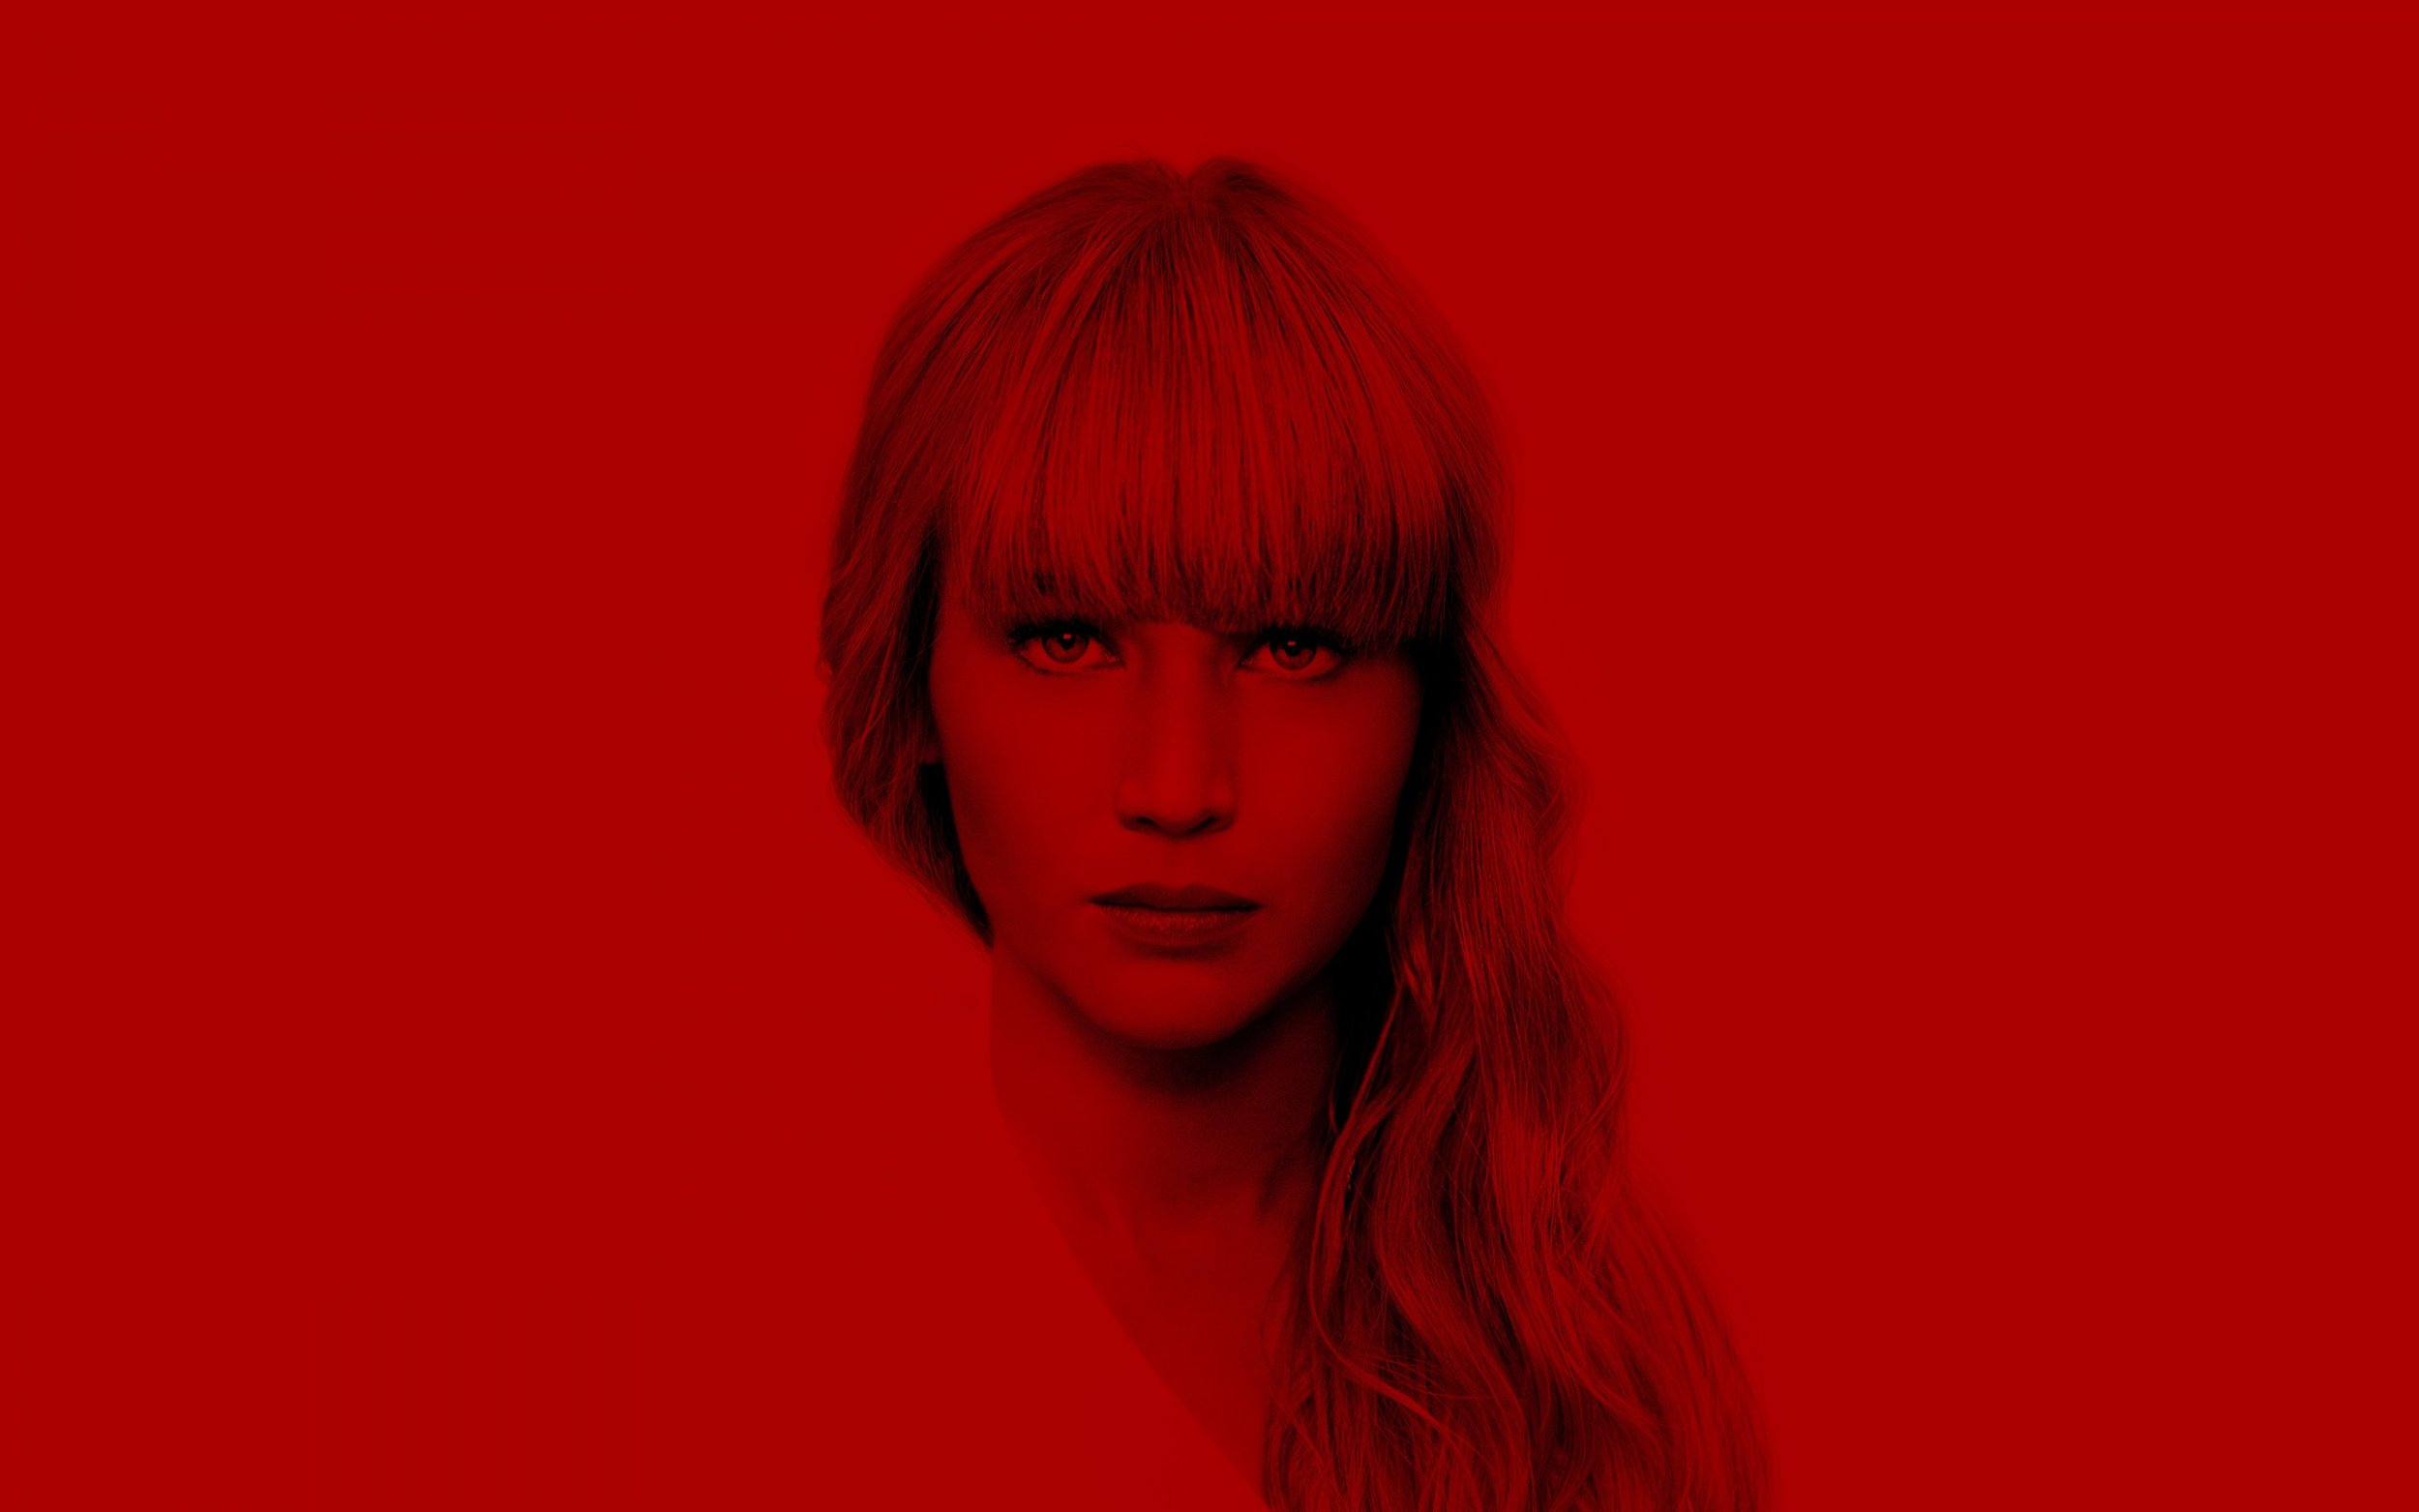 red-sparrow-2880x1800-jennifer-lawrence-2018-11925.jpg